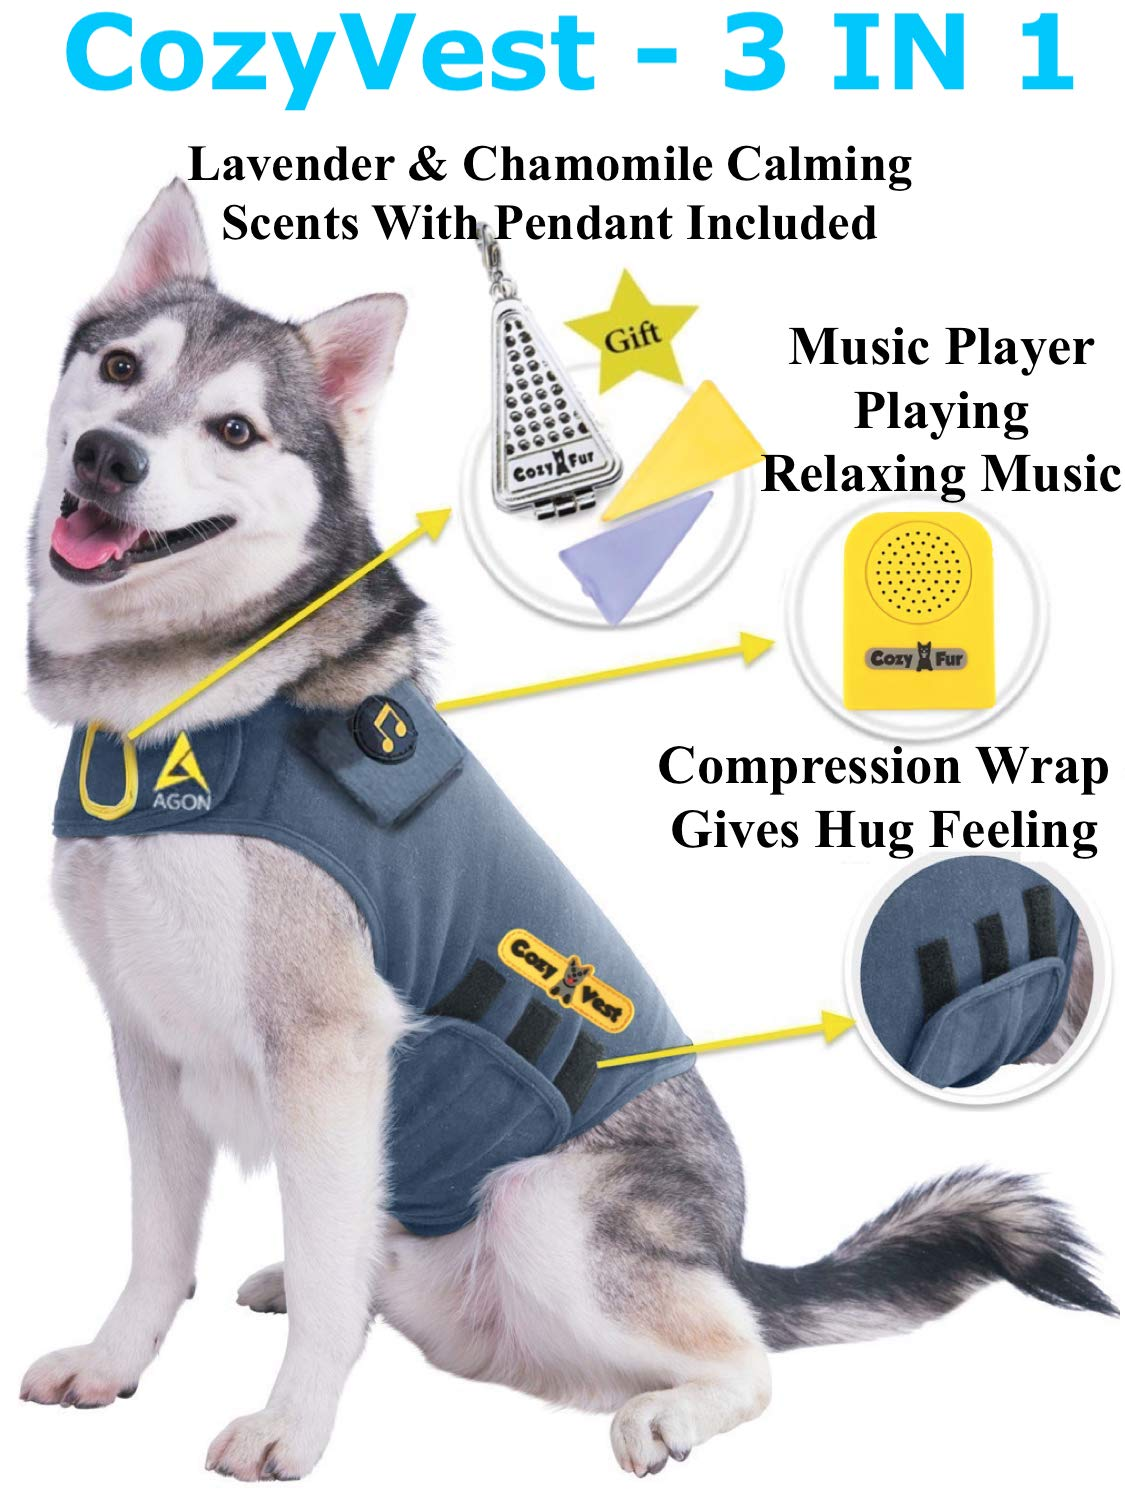 CozyVest Thunder jacket for dogs